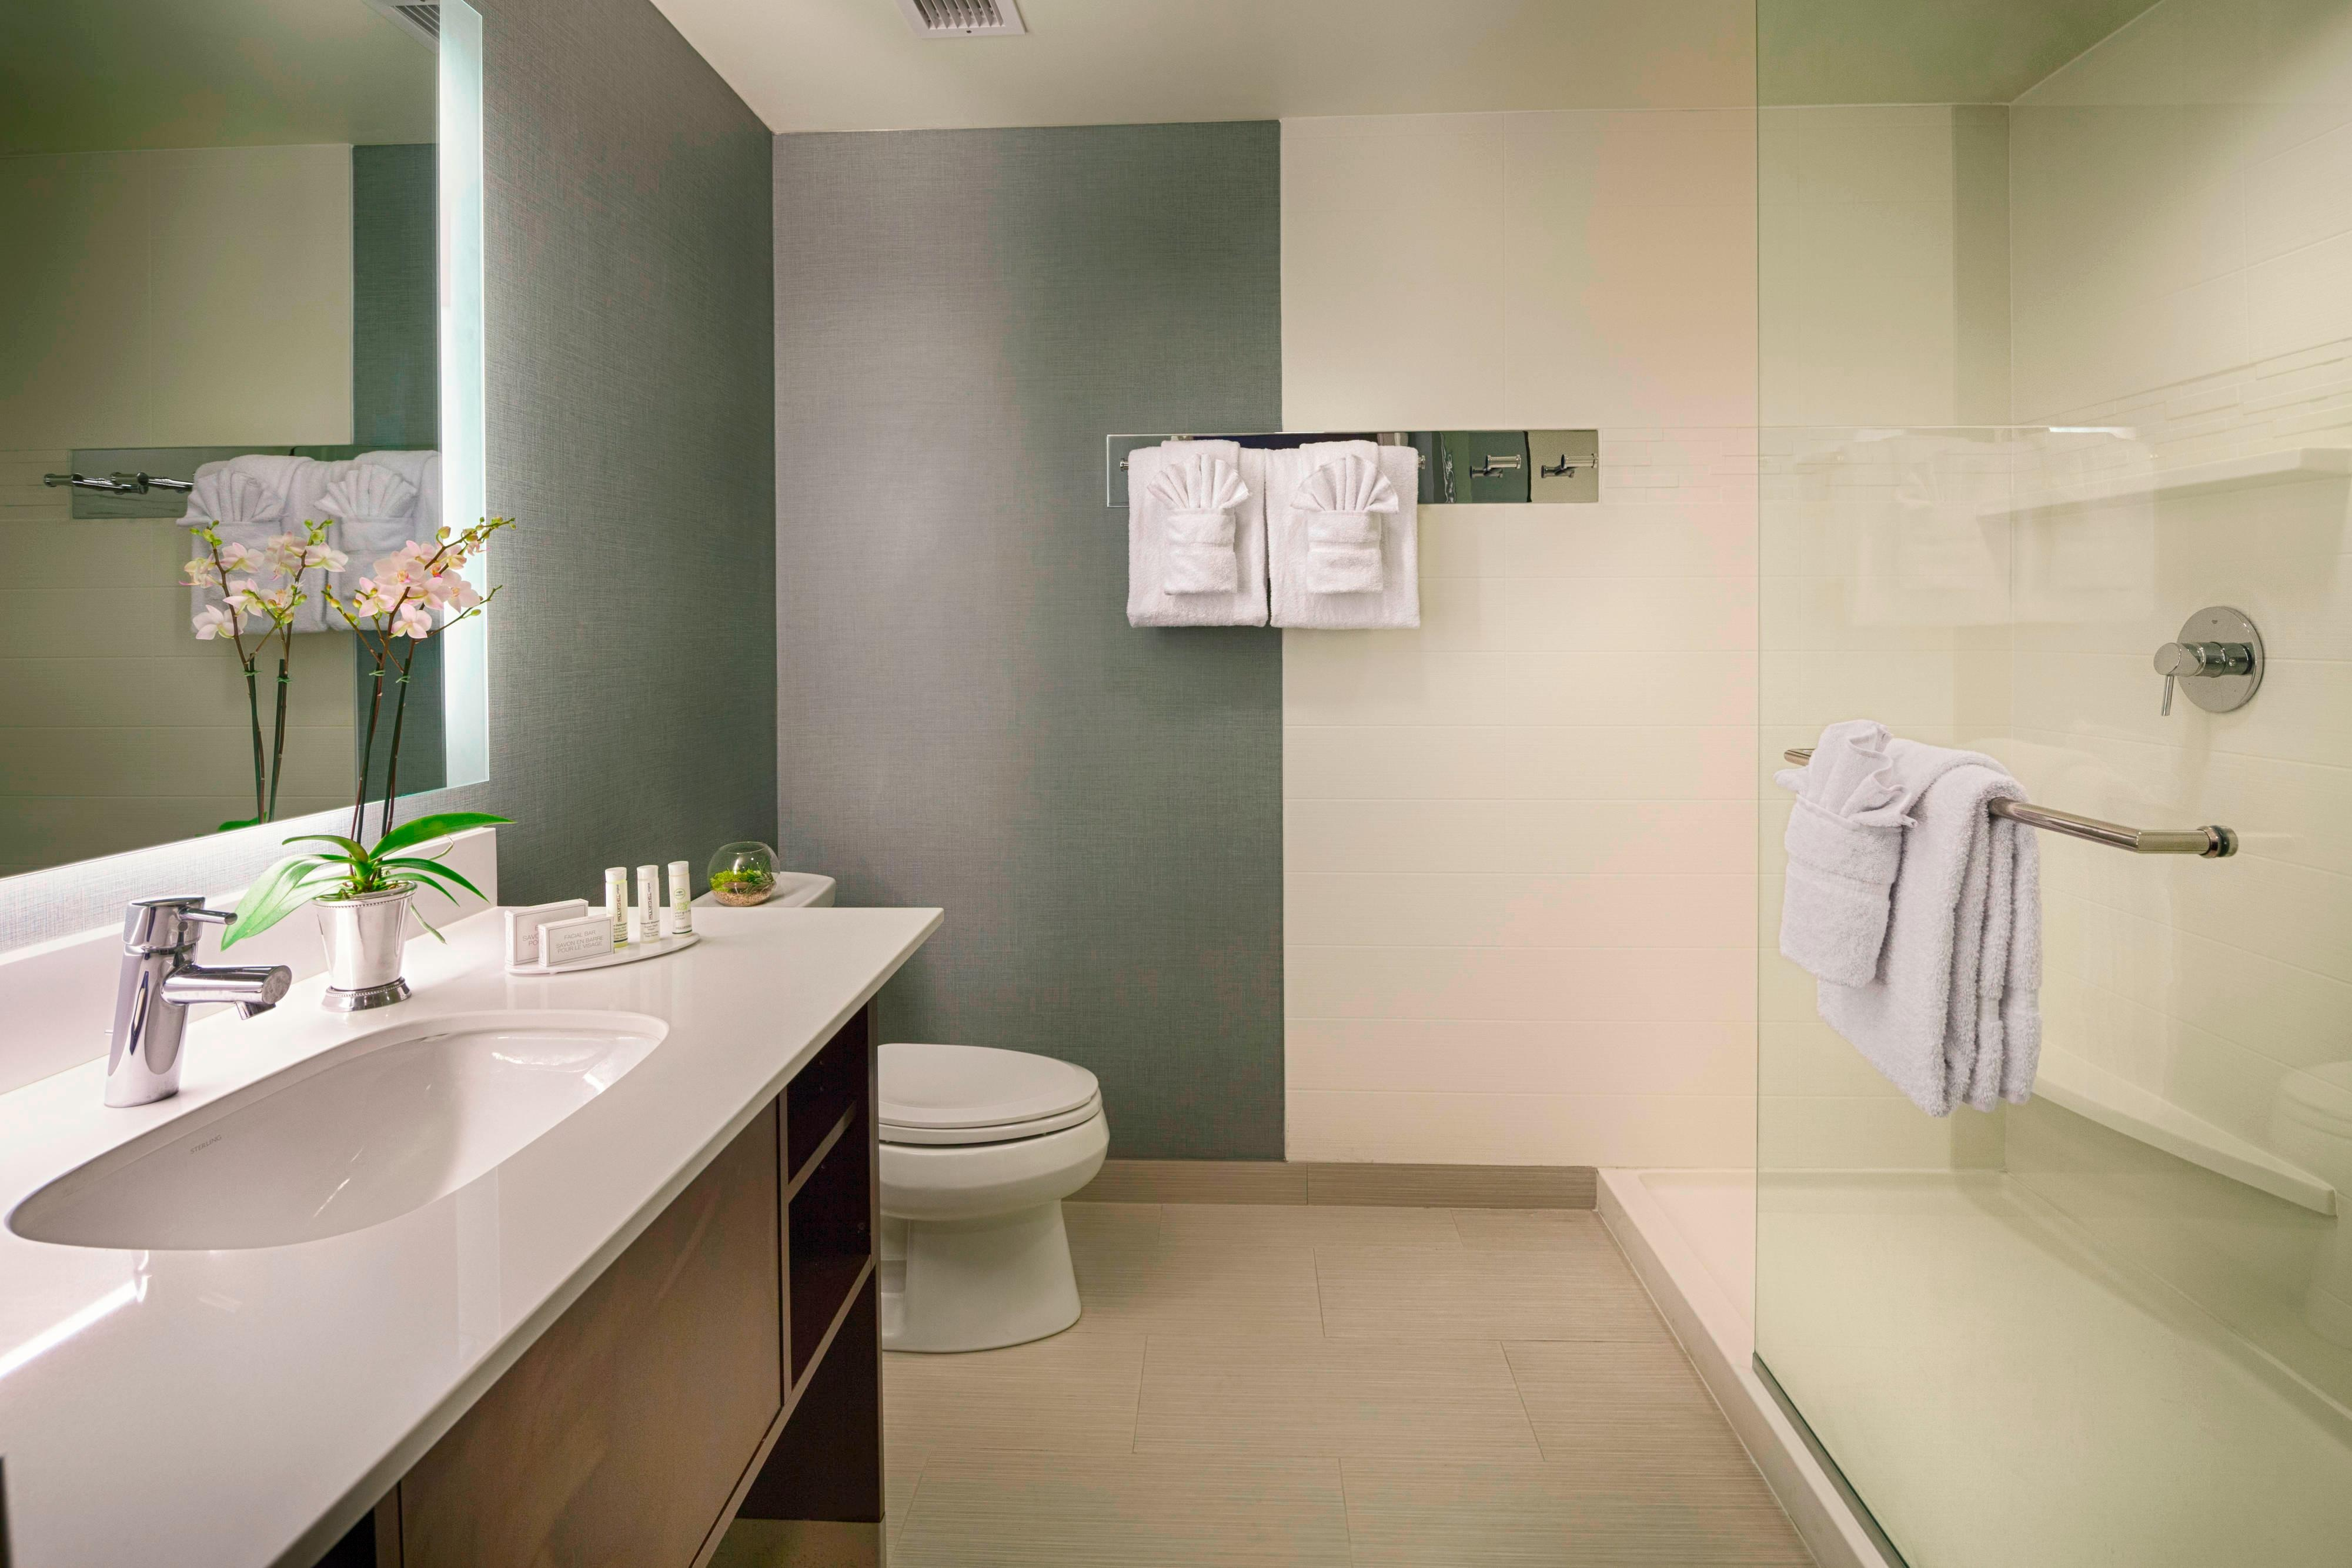 Residence Inn Pullman, Washington Extended Stay Hotel Suite Bathroom